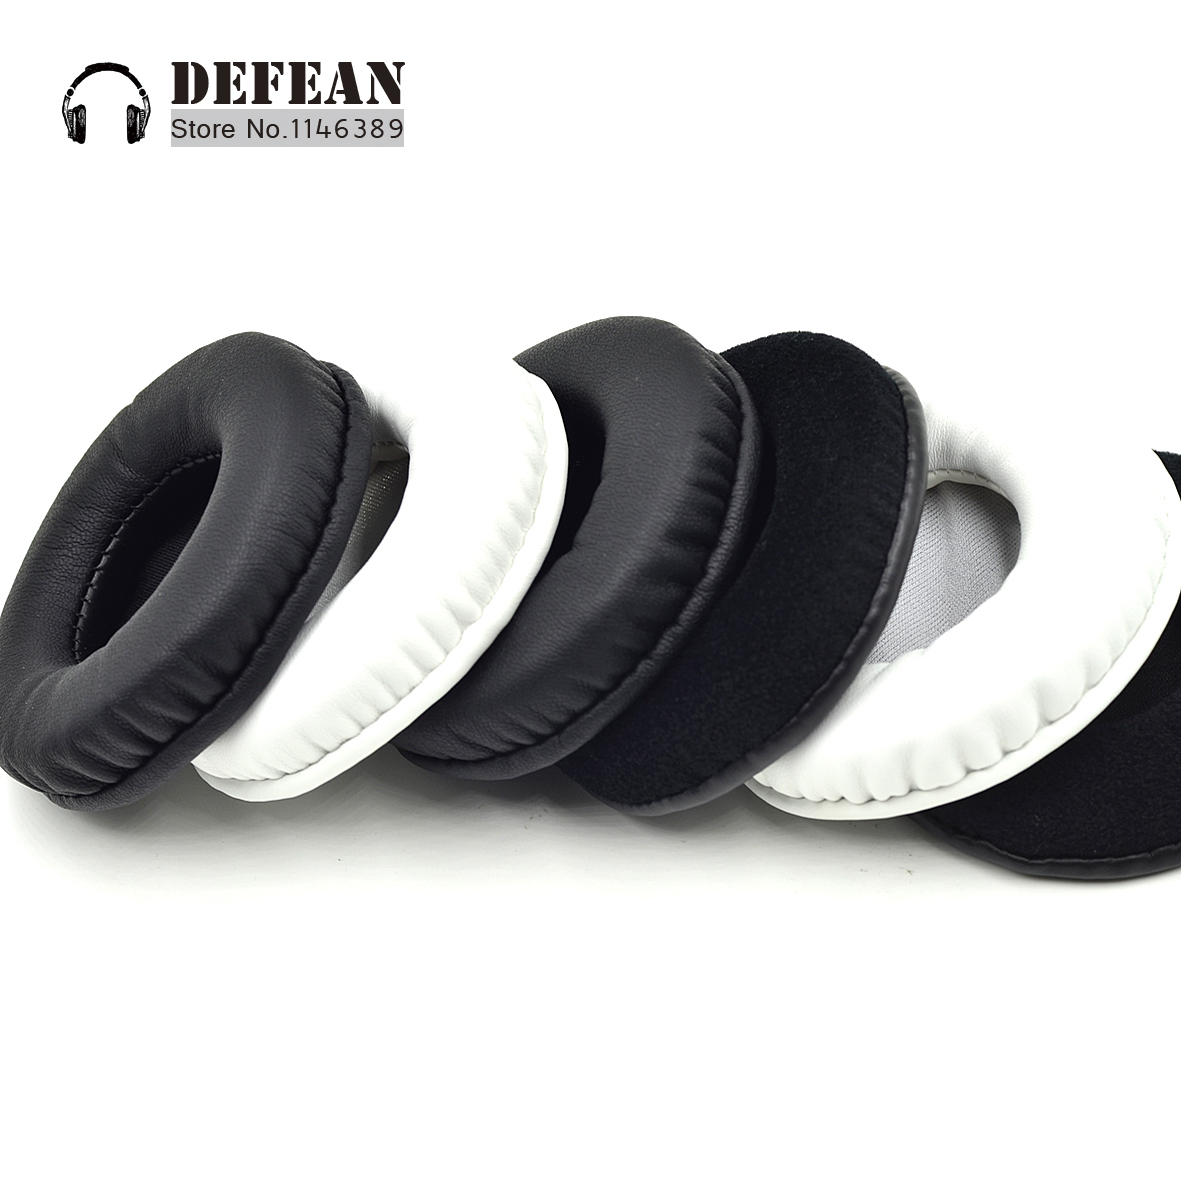 Where To Buy Earthan Headset Depoche Mode Bluetooth Wireless Over Ear Headphones With Mic,Stereo Wireless Headset,Folding Design...